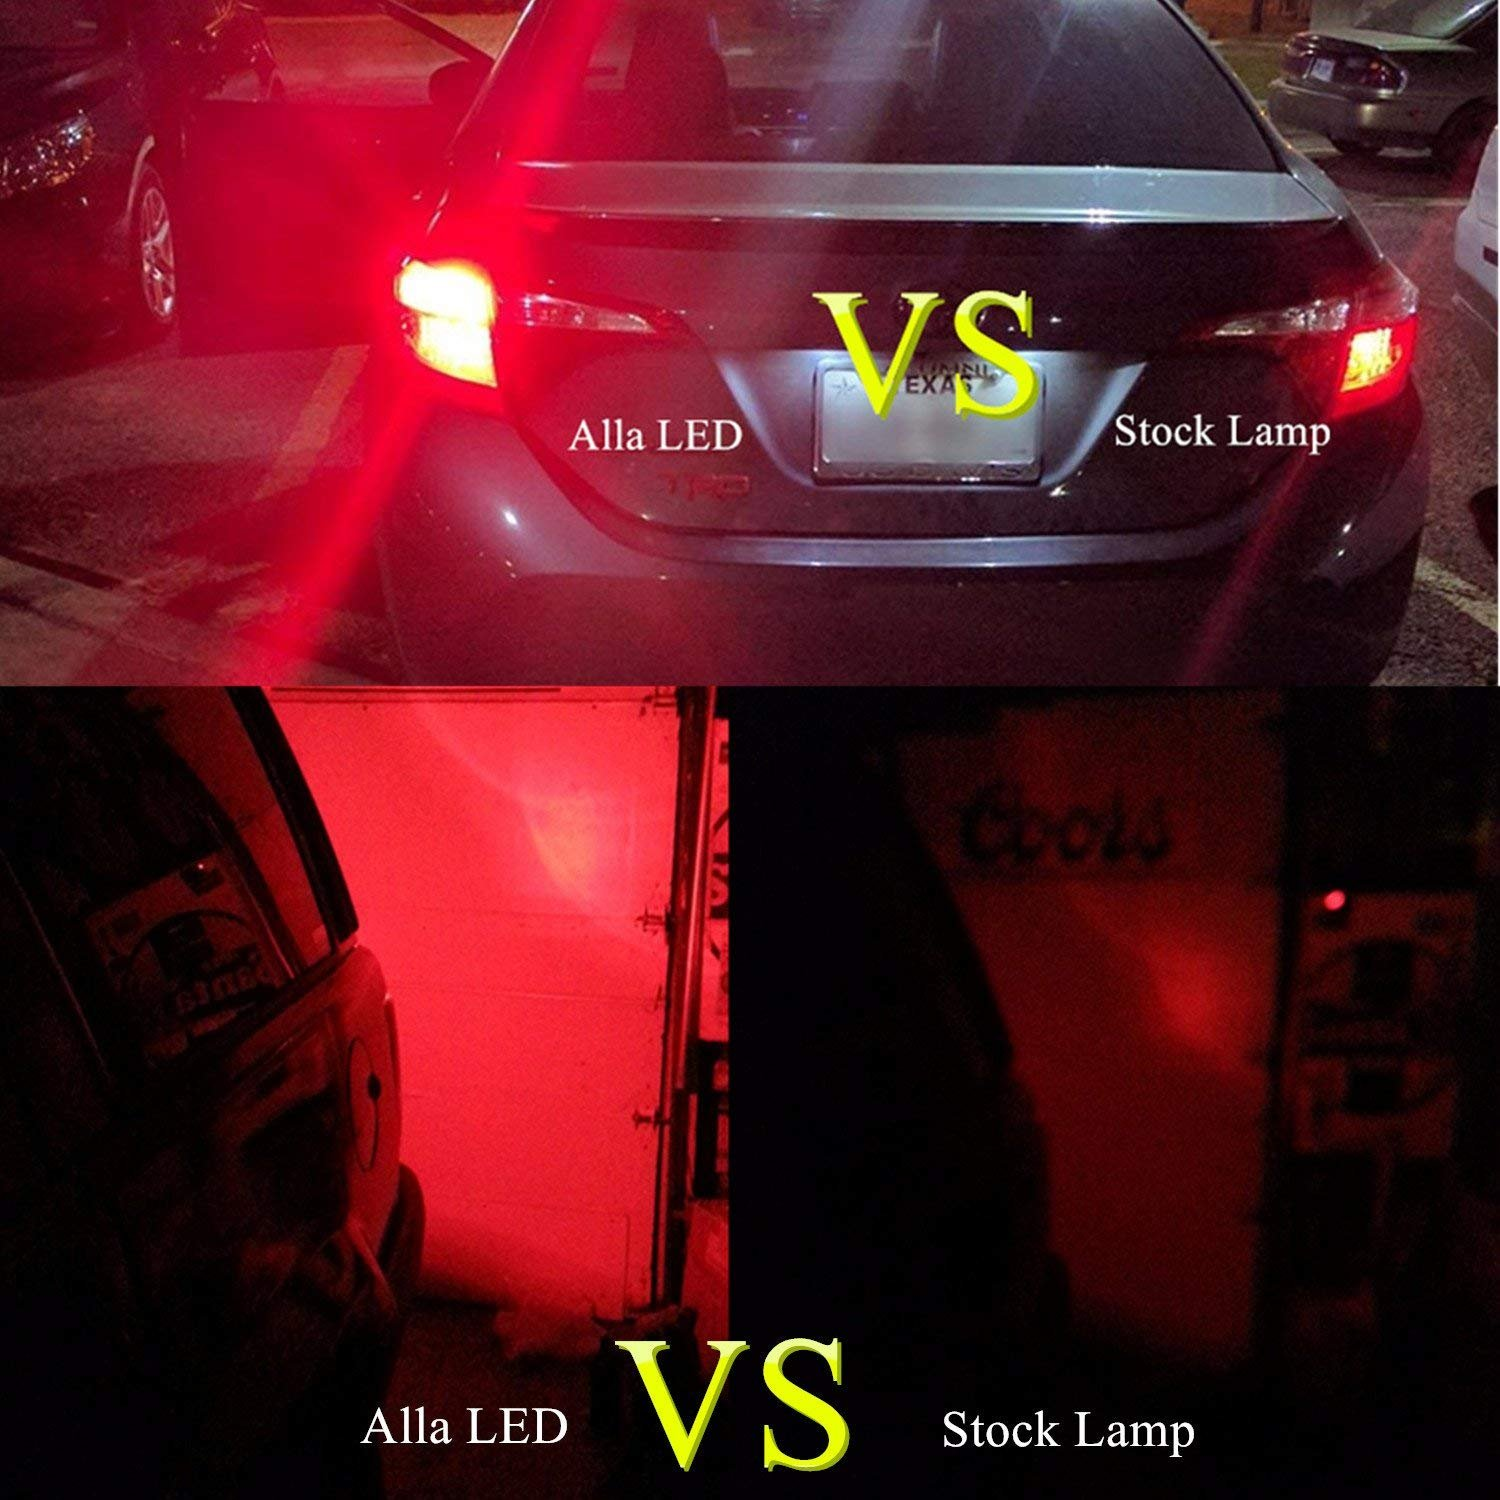 Truck Syneticusa 3156 3157 Red LED Strobe Brake Lights Bulbs Super Bright Wedge High Power 3535 LED 12V Flashing Strobe Stop Lights Replacement for Cars